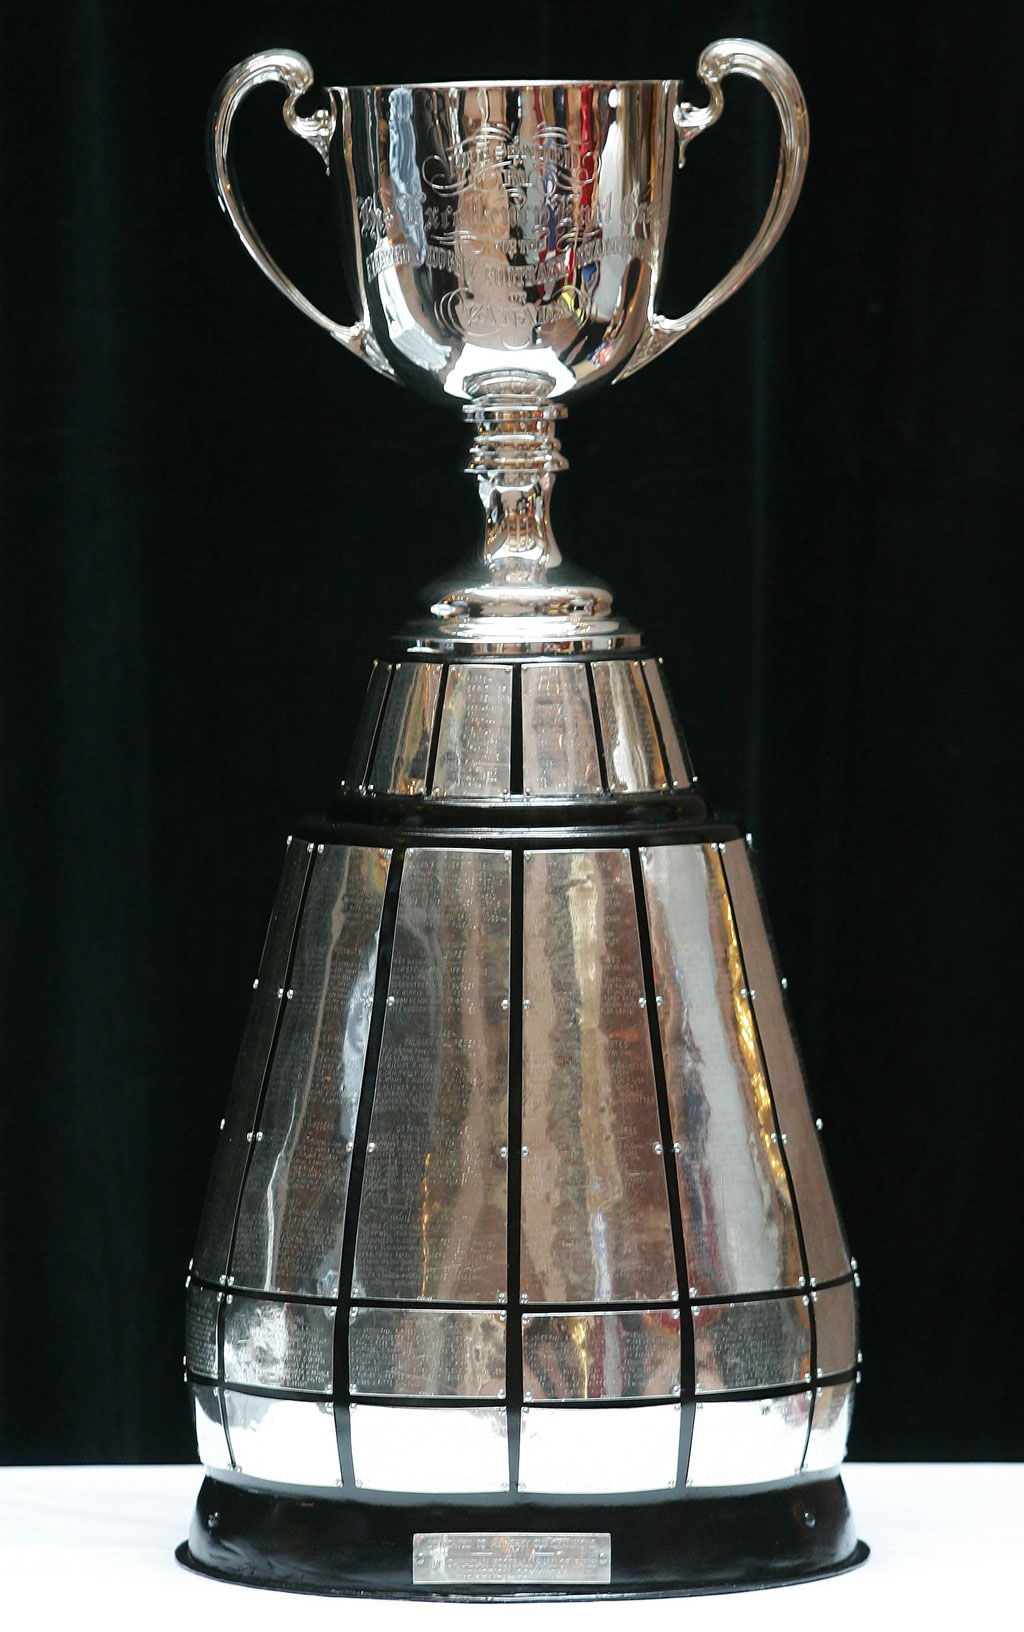 9 grey cup - ugliest trophies in sports